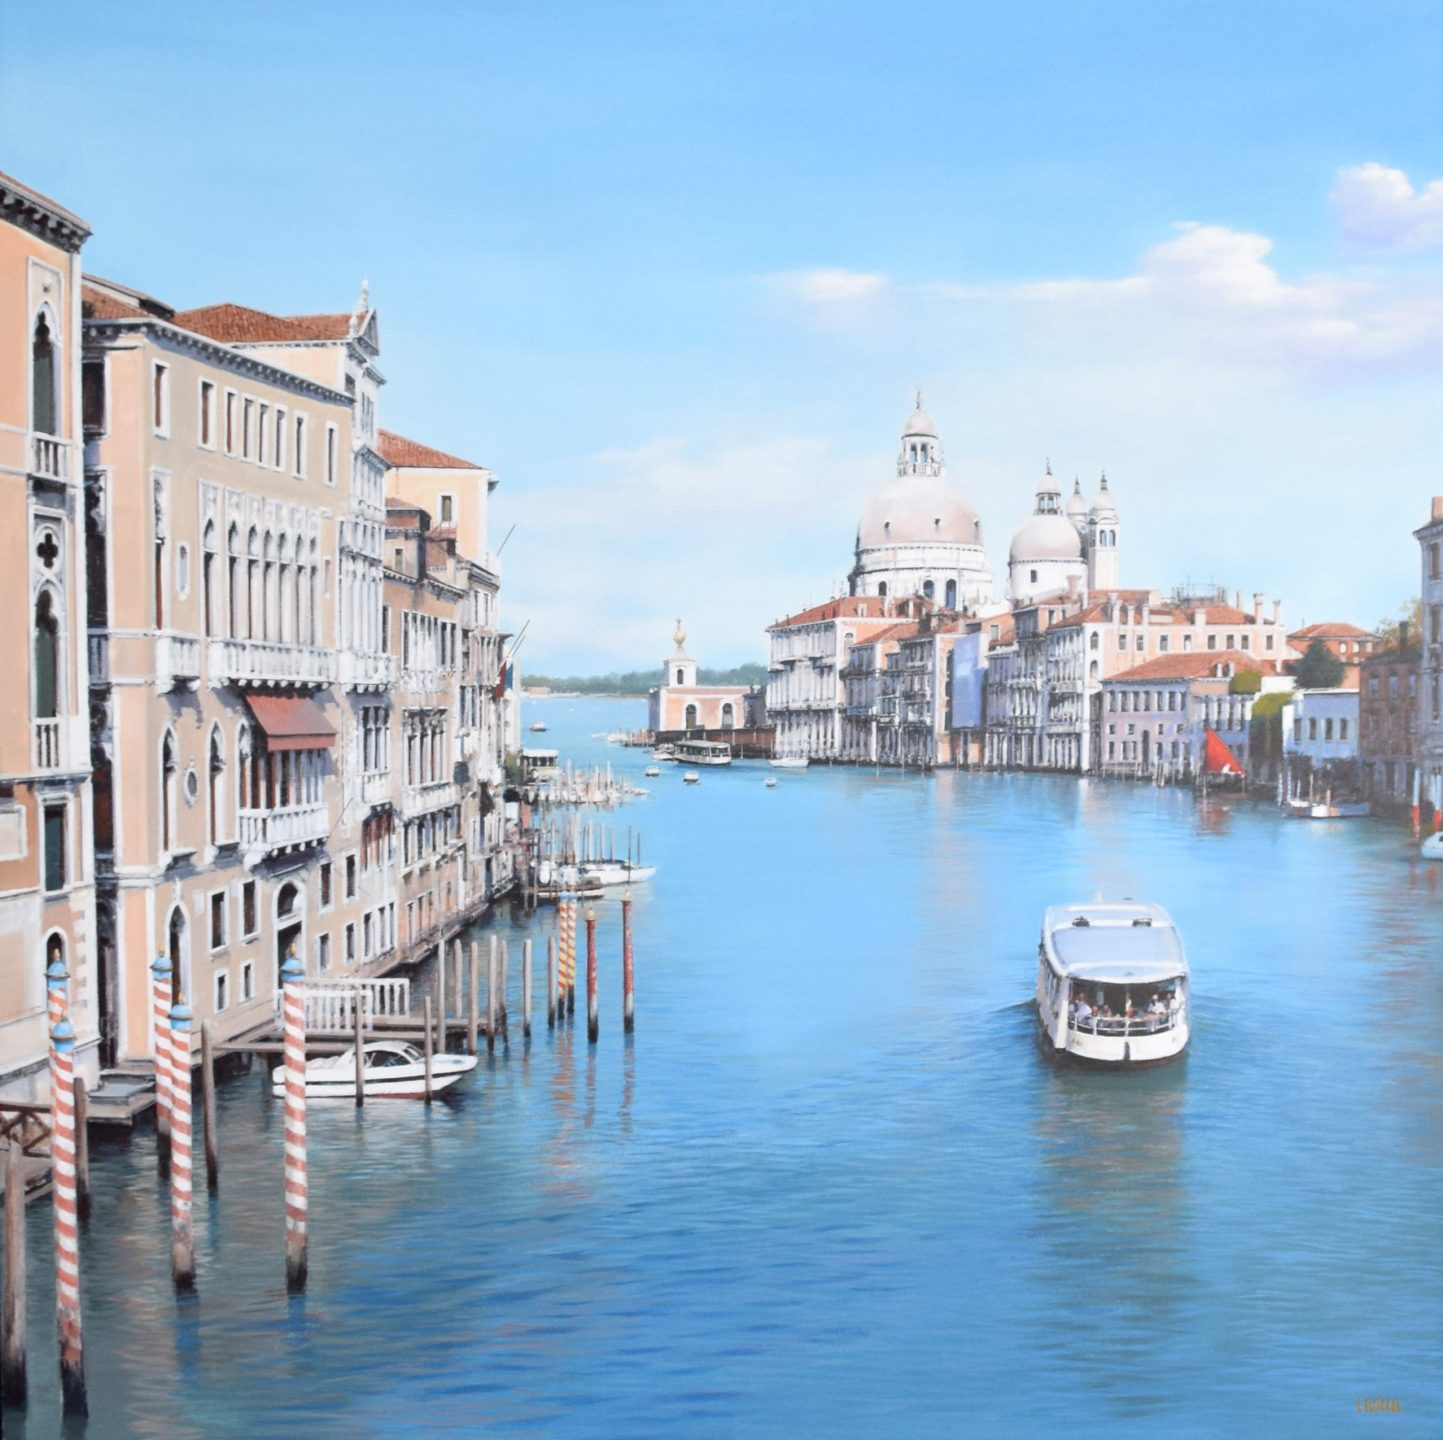 Luigi Rocca - Slowly crossing the Grand Canal , 6855-006-248